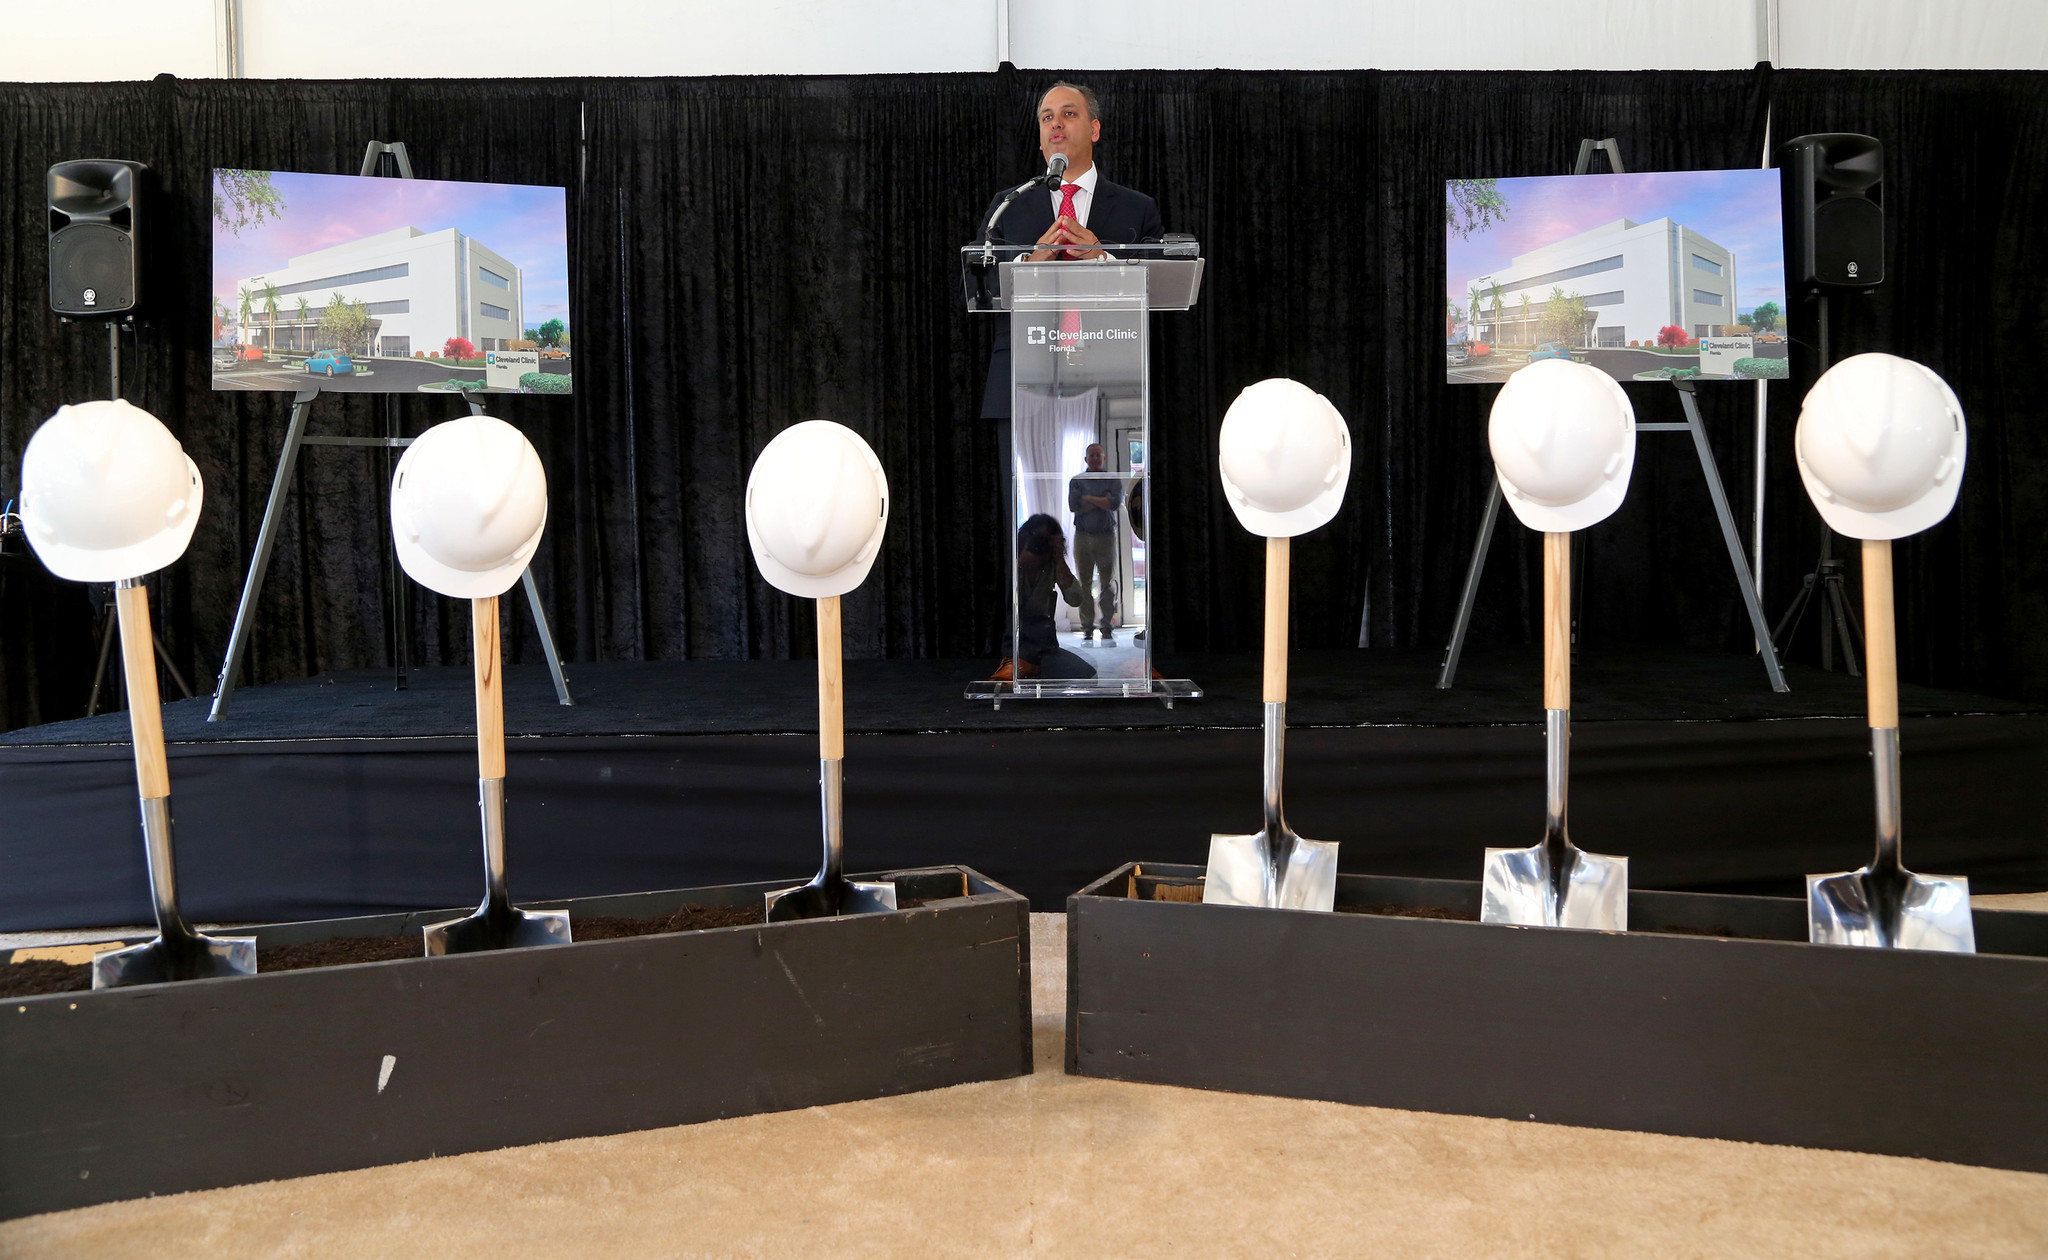 Cleveland Clinic Florida Breaks Ground On Coral Springs Surgery Center